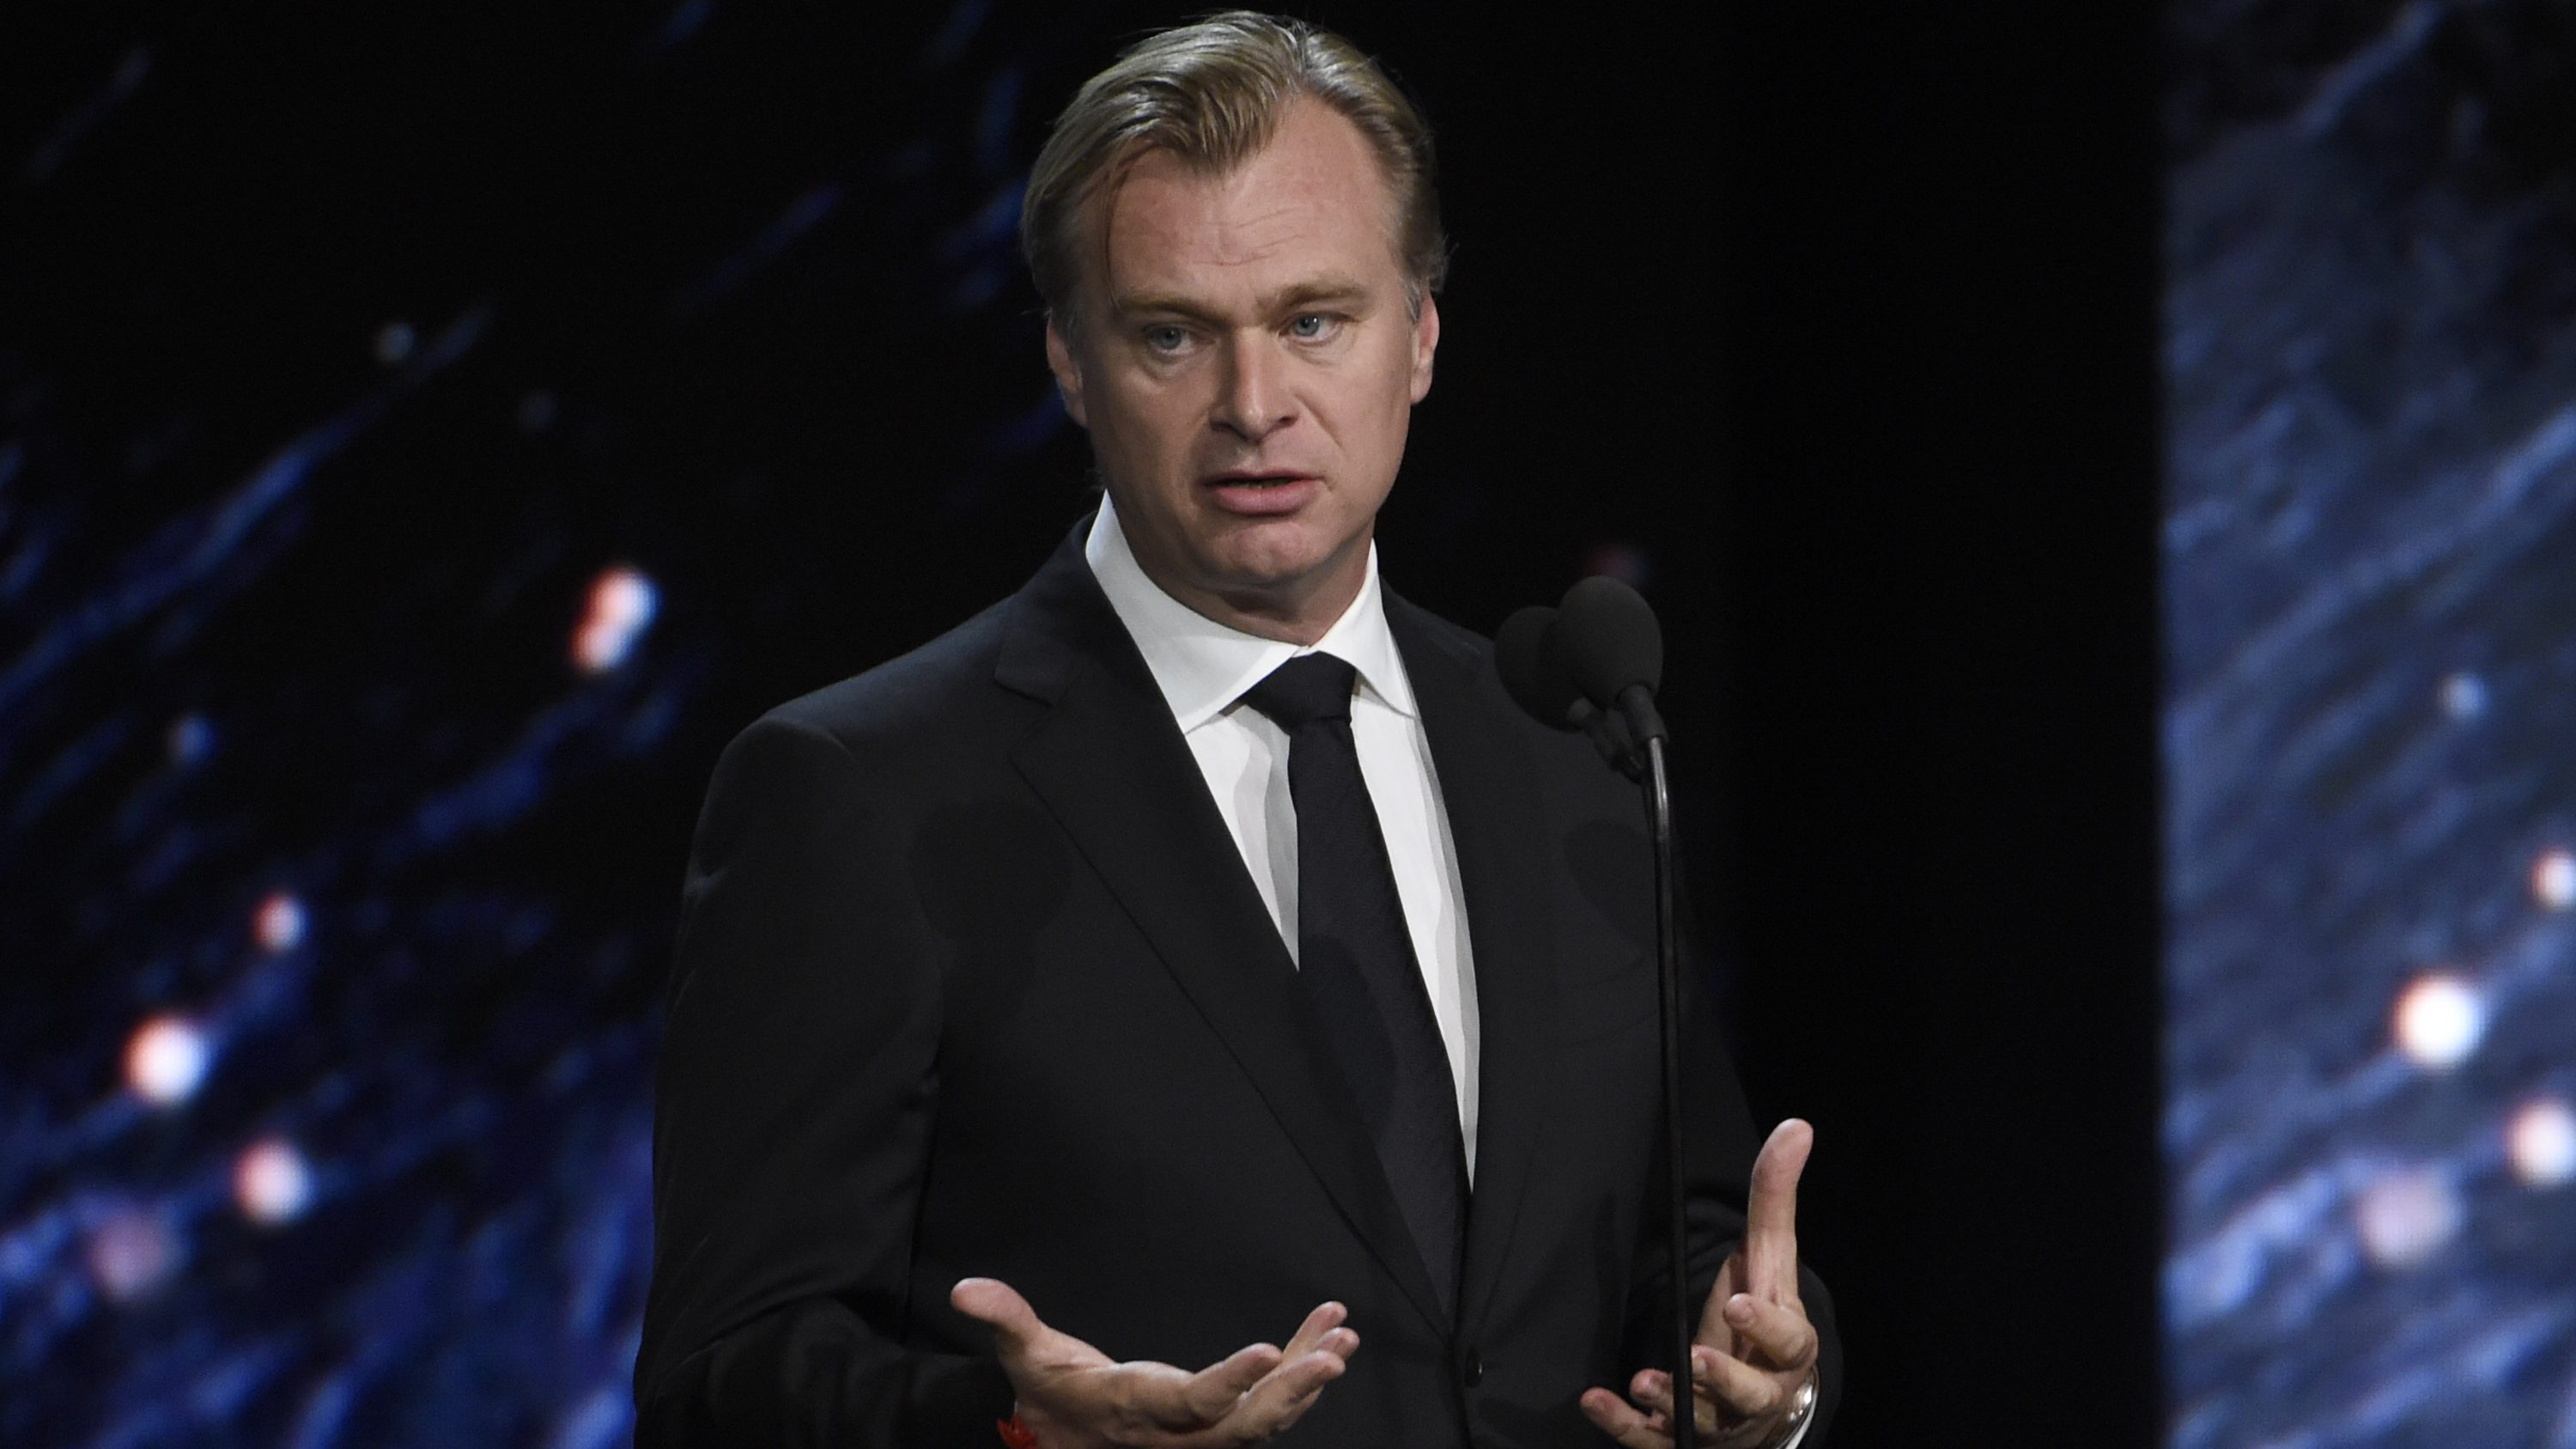 Christopher Nolan presents the Albert R. Broccoli award for worldwide contribution to entertainment at the BAFTA Los Angeles Britannia Awards at the Beverly Hilton Hotel on Friday, Oct. 27, 2017, in Beverly Hills, Calif. (Photo by Chris Pizzello/Invision/AP)